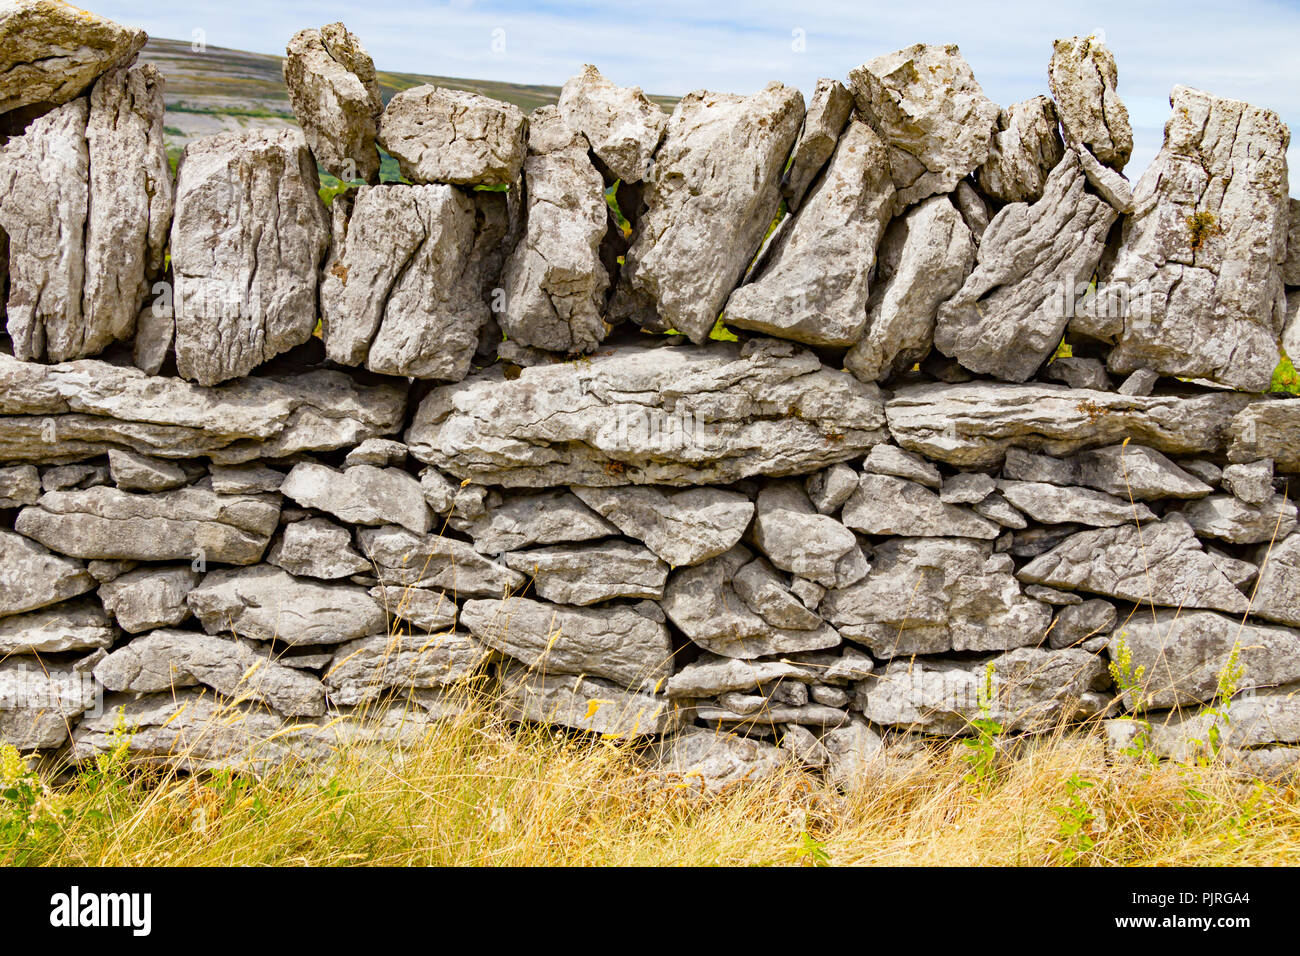 Stone wall and vegetation in Ballyvaughan, Ireland - Stock Image